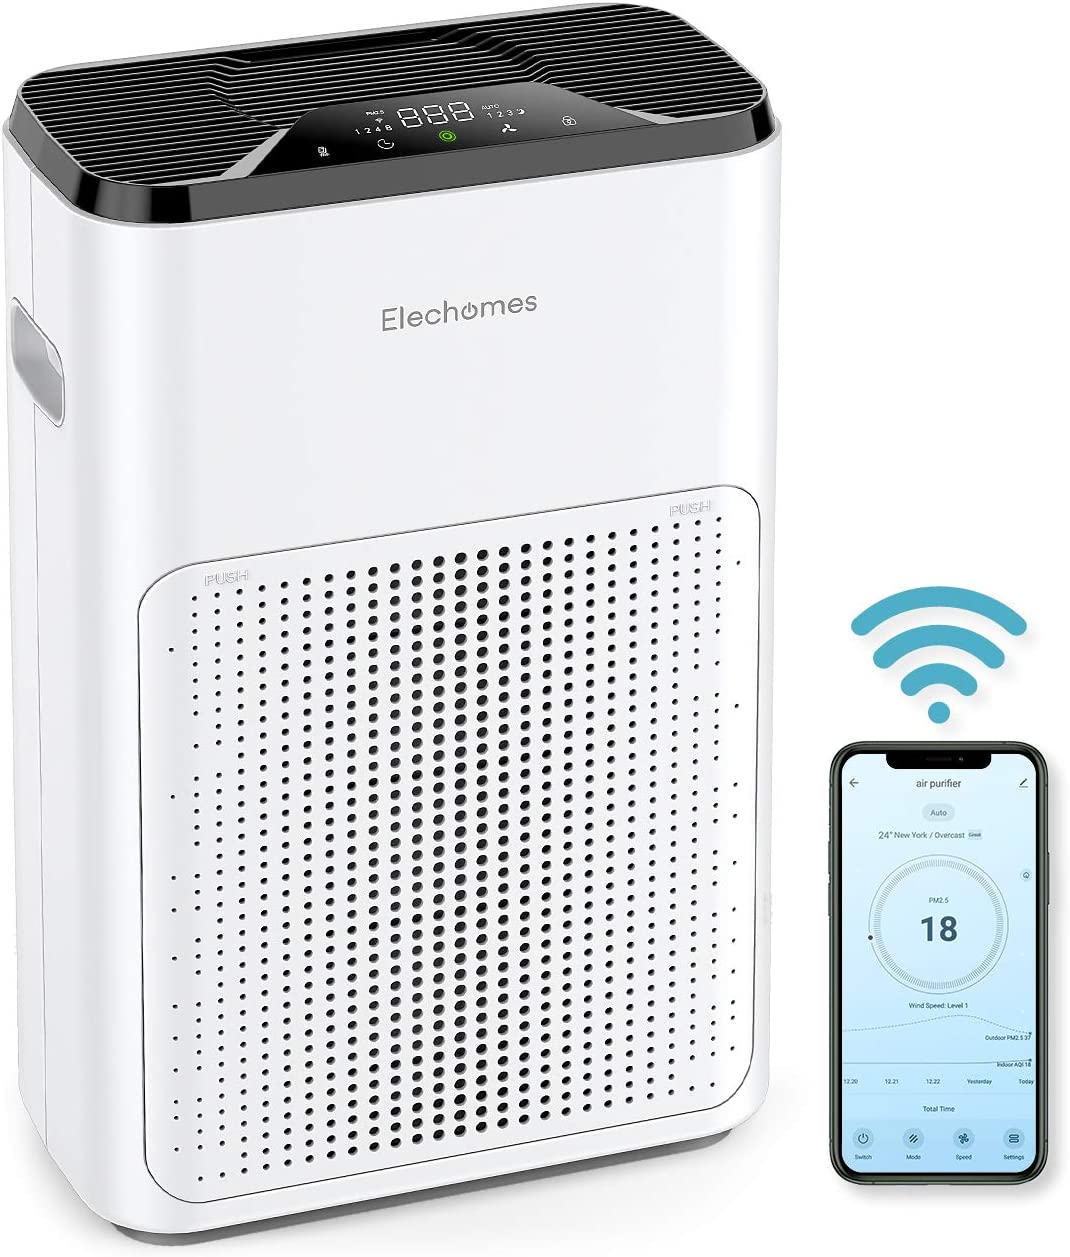 Elechomes KJ200-A3B Pro Series Air Purifier for Home Large Room with True HEPA Filter, Quiet in Bedroom Office, Air Cleaner Filter for Pets Smokers Pollen, WiFi APP Control,Air Quality Sensor 325sq.ft